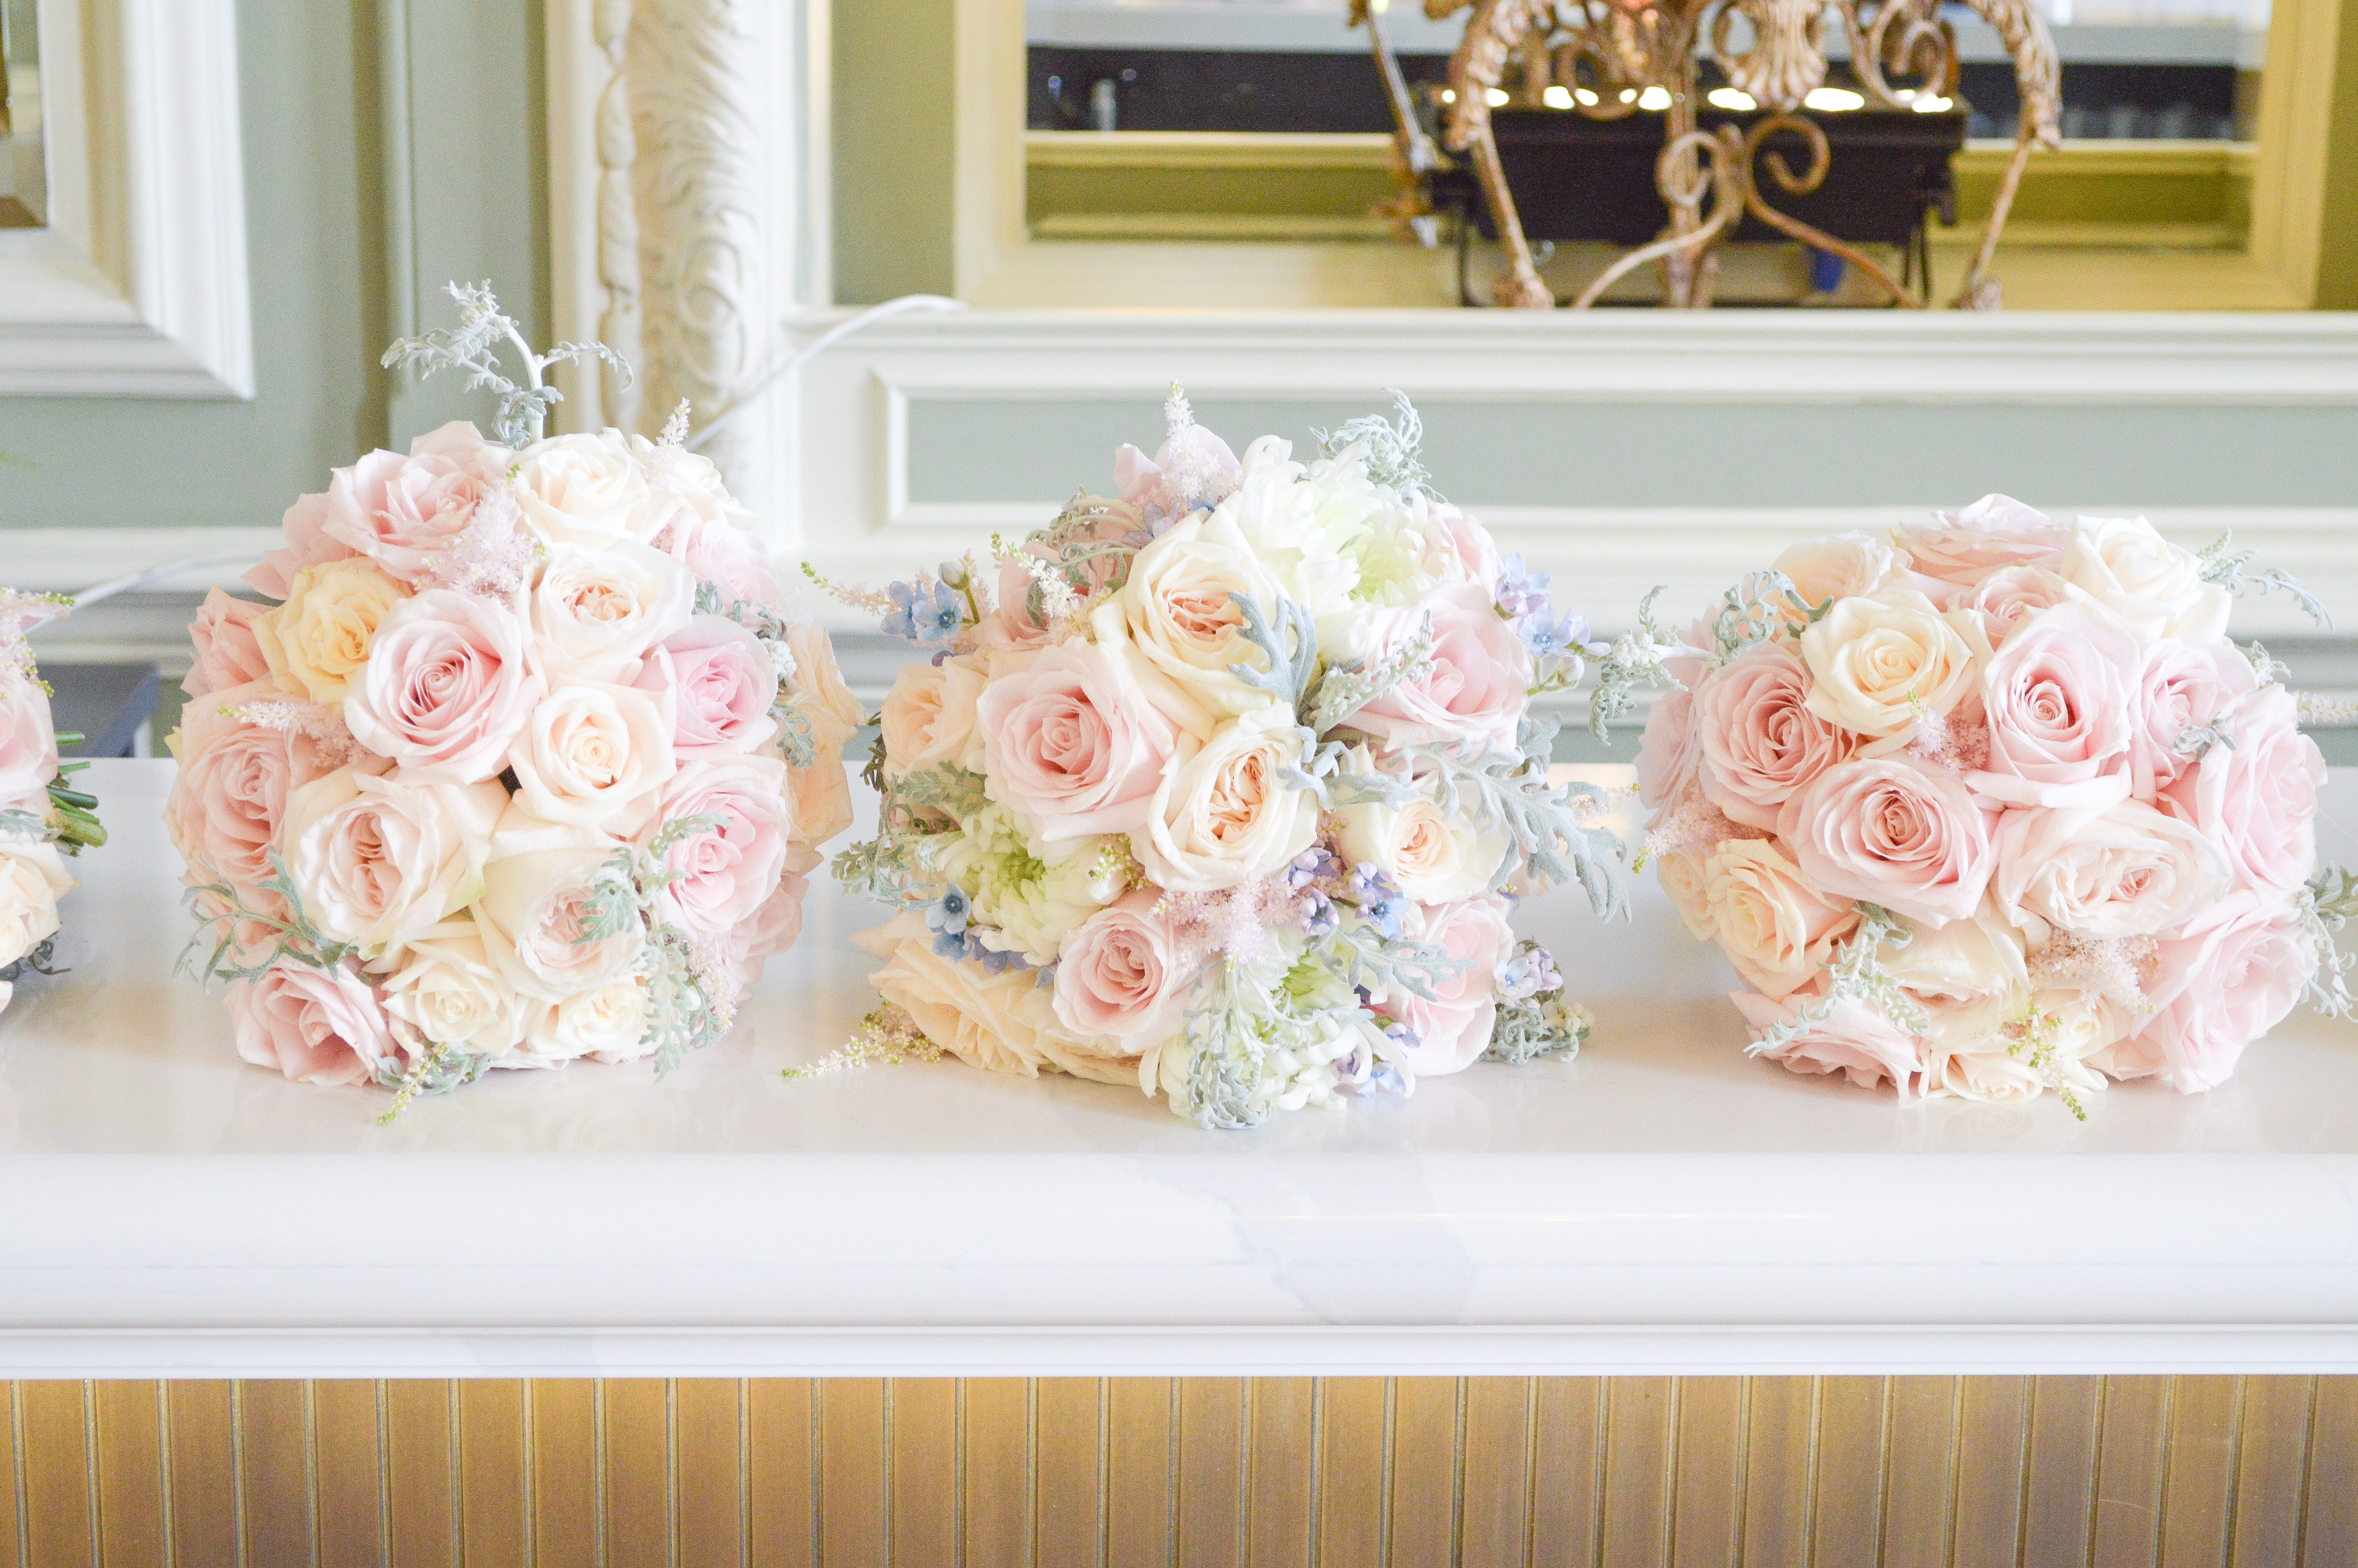 Dusty Blue And Pink Wedding Flowers Bridal Bridesmaids Bouquet Cherie Kelly Cakes London Hedsor House 2 Cherie Kelly